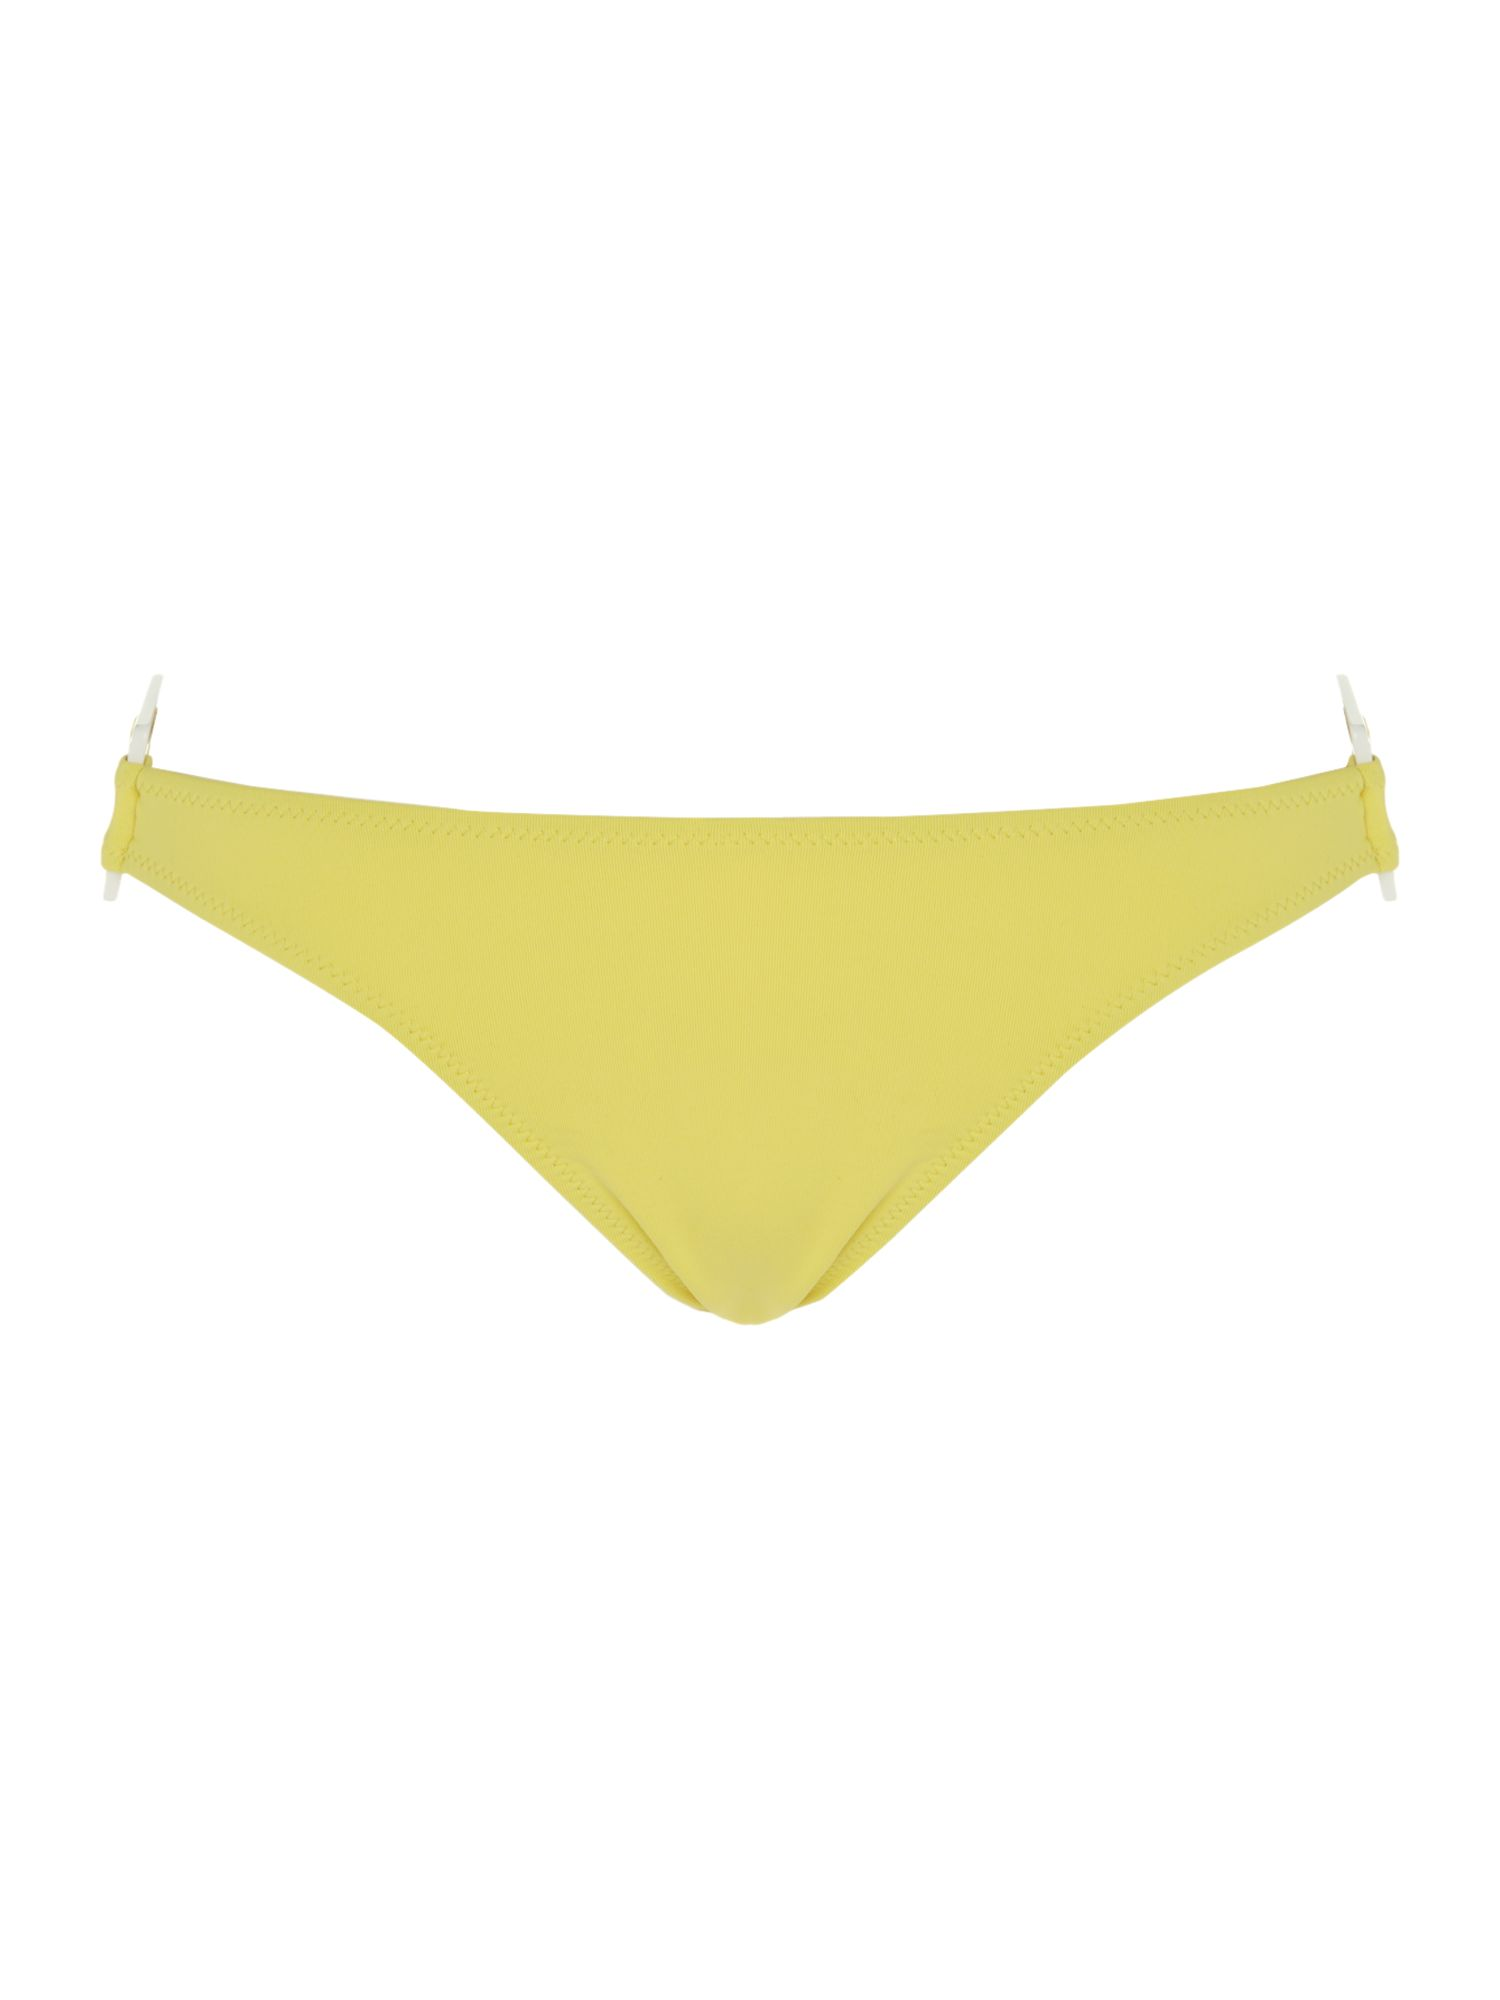 Paris yellow brief